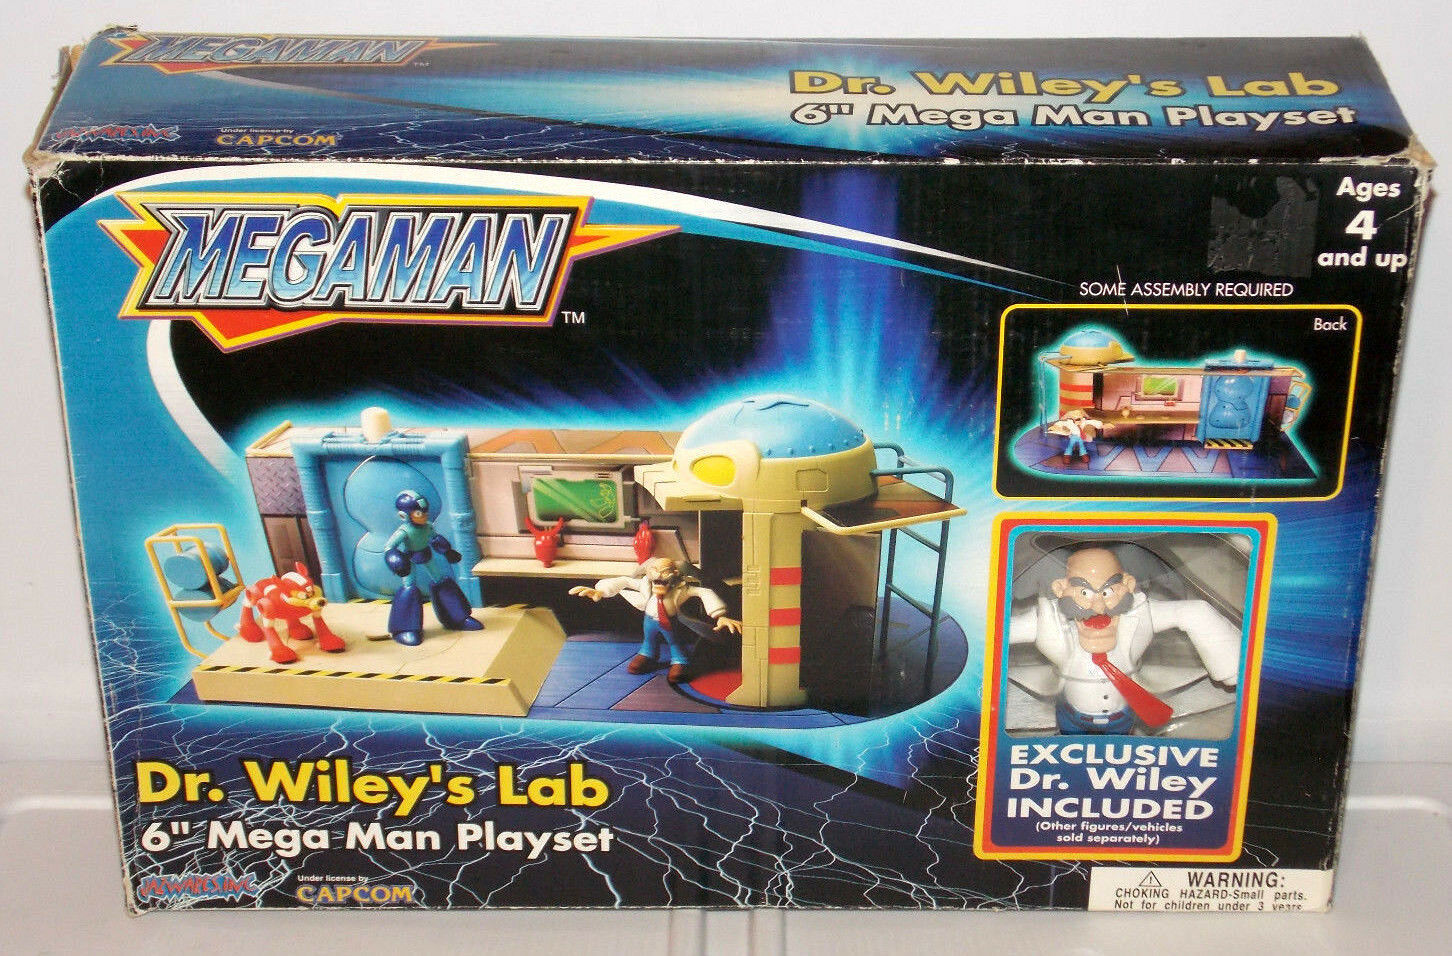 2005 Mega Man  Dr. Wiley's Lab 6  Action Figures Playset Toys Kids Capcom RARE